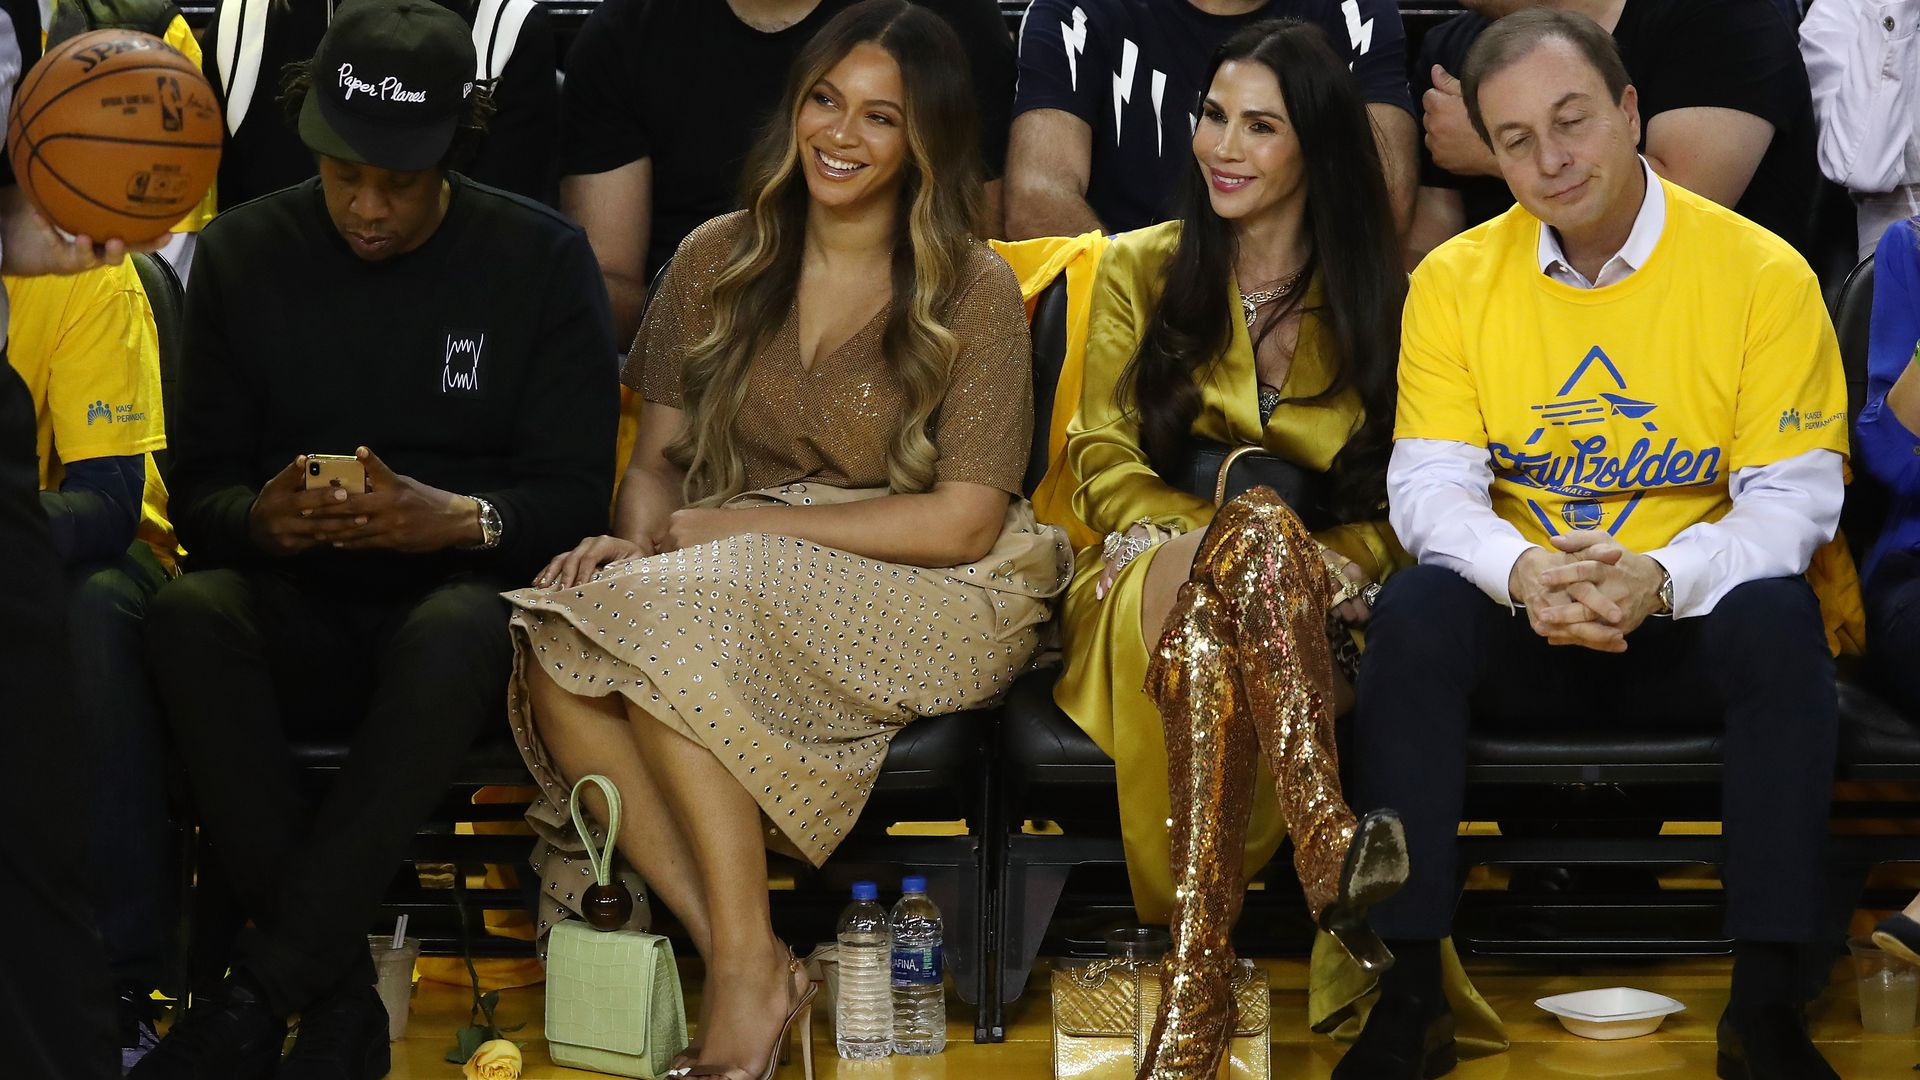 In this image, Beyonce sits next to others on a courtside basketball game.